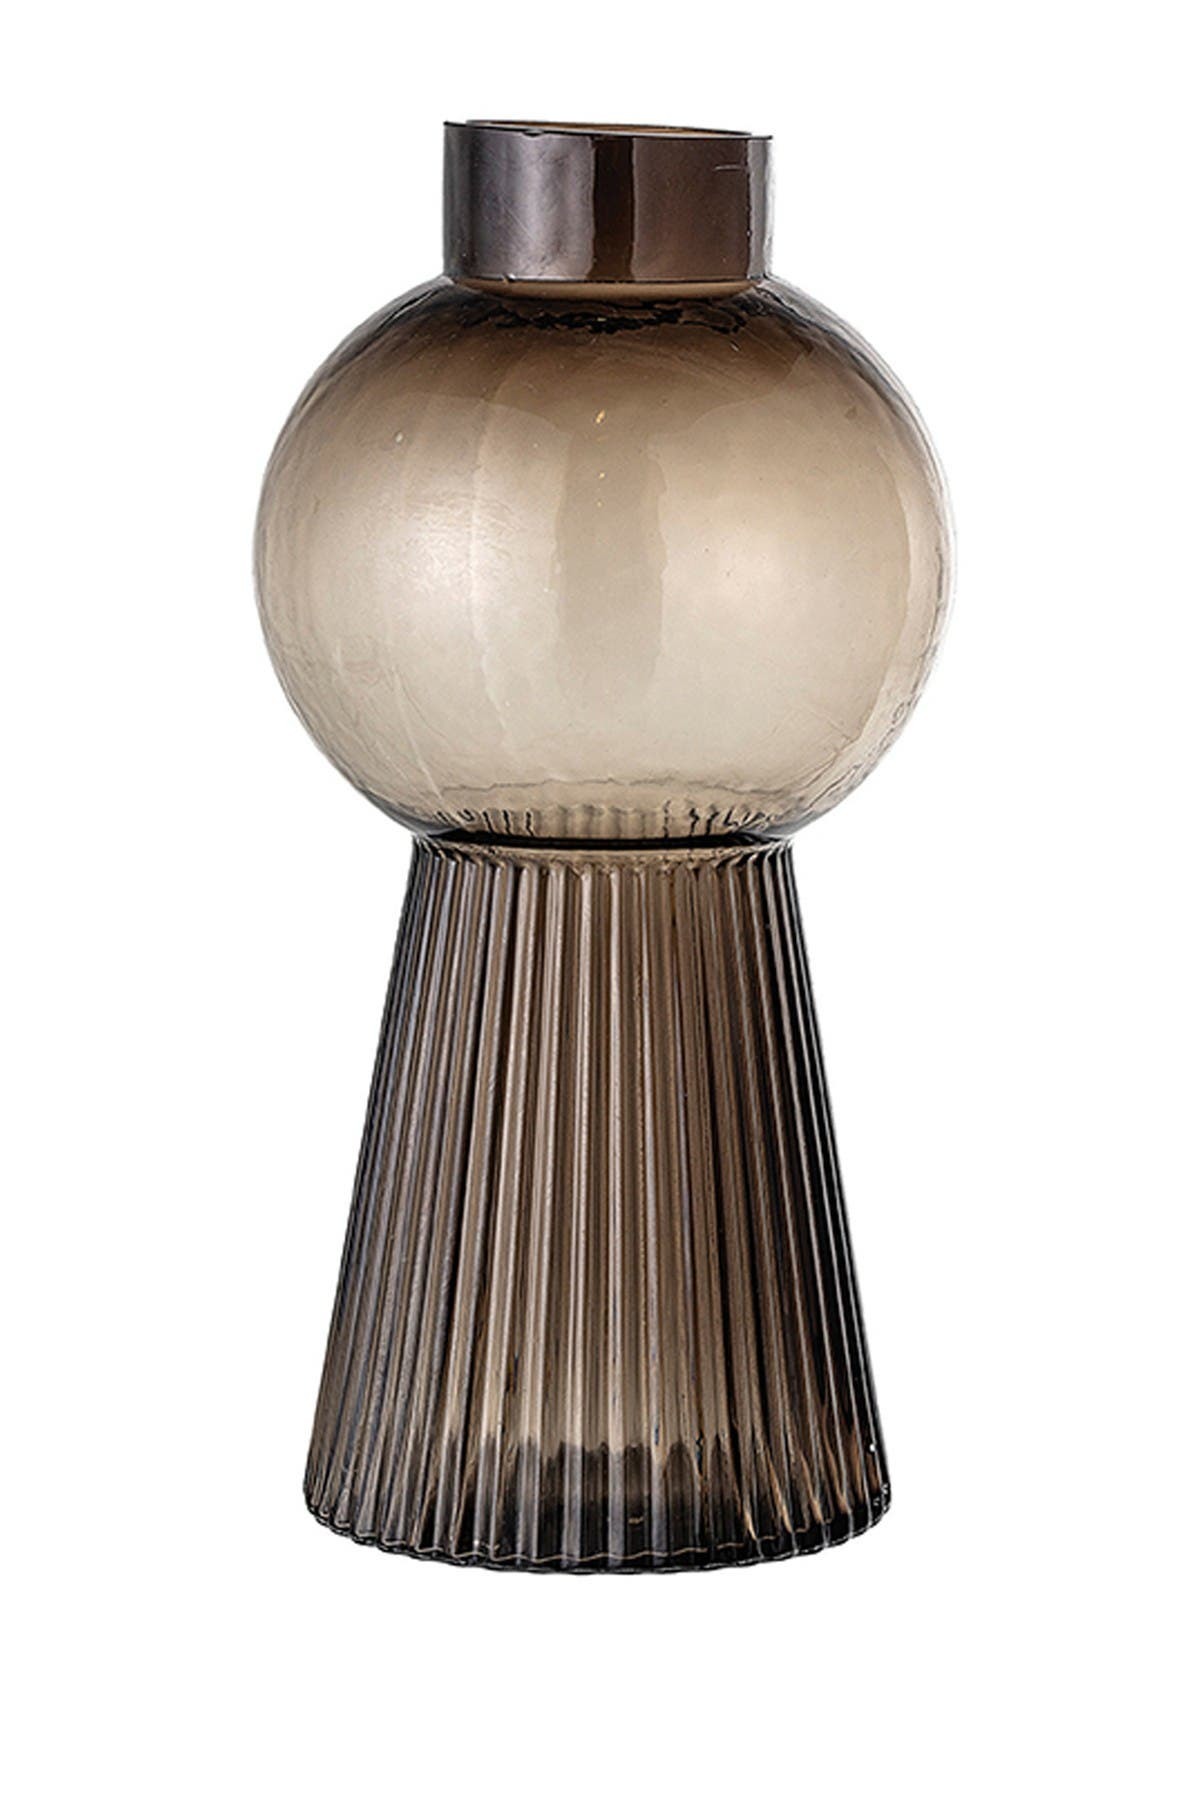 BLOOMINGVILLE Round Molded Tinted Glass Vase